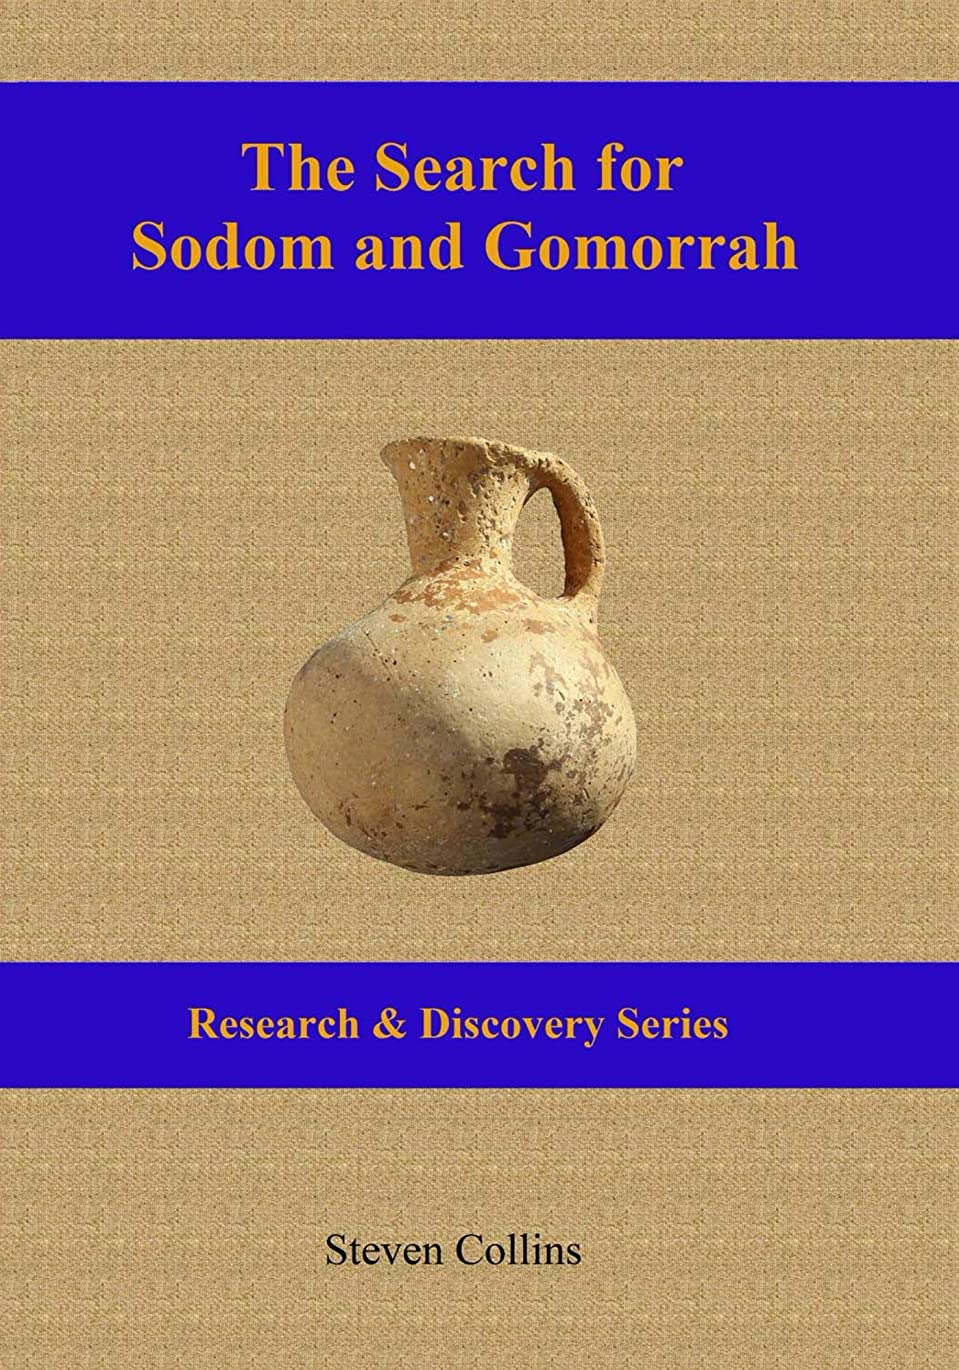 有効冷淡なズームインするThe Search for Sodom and Gomorrah (Research & Discovery Series) (English Edition)